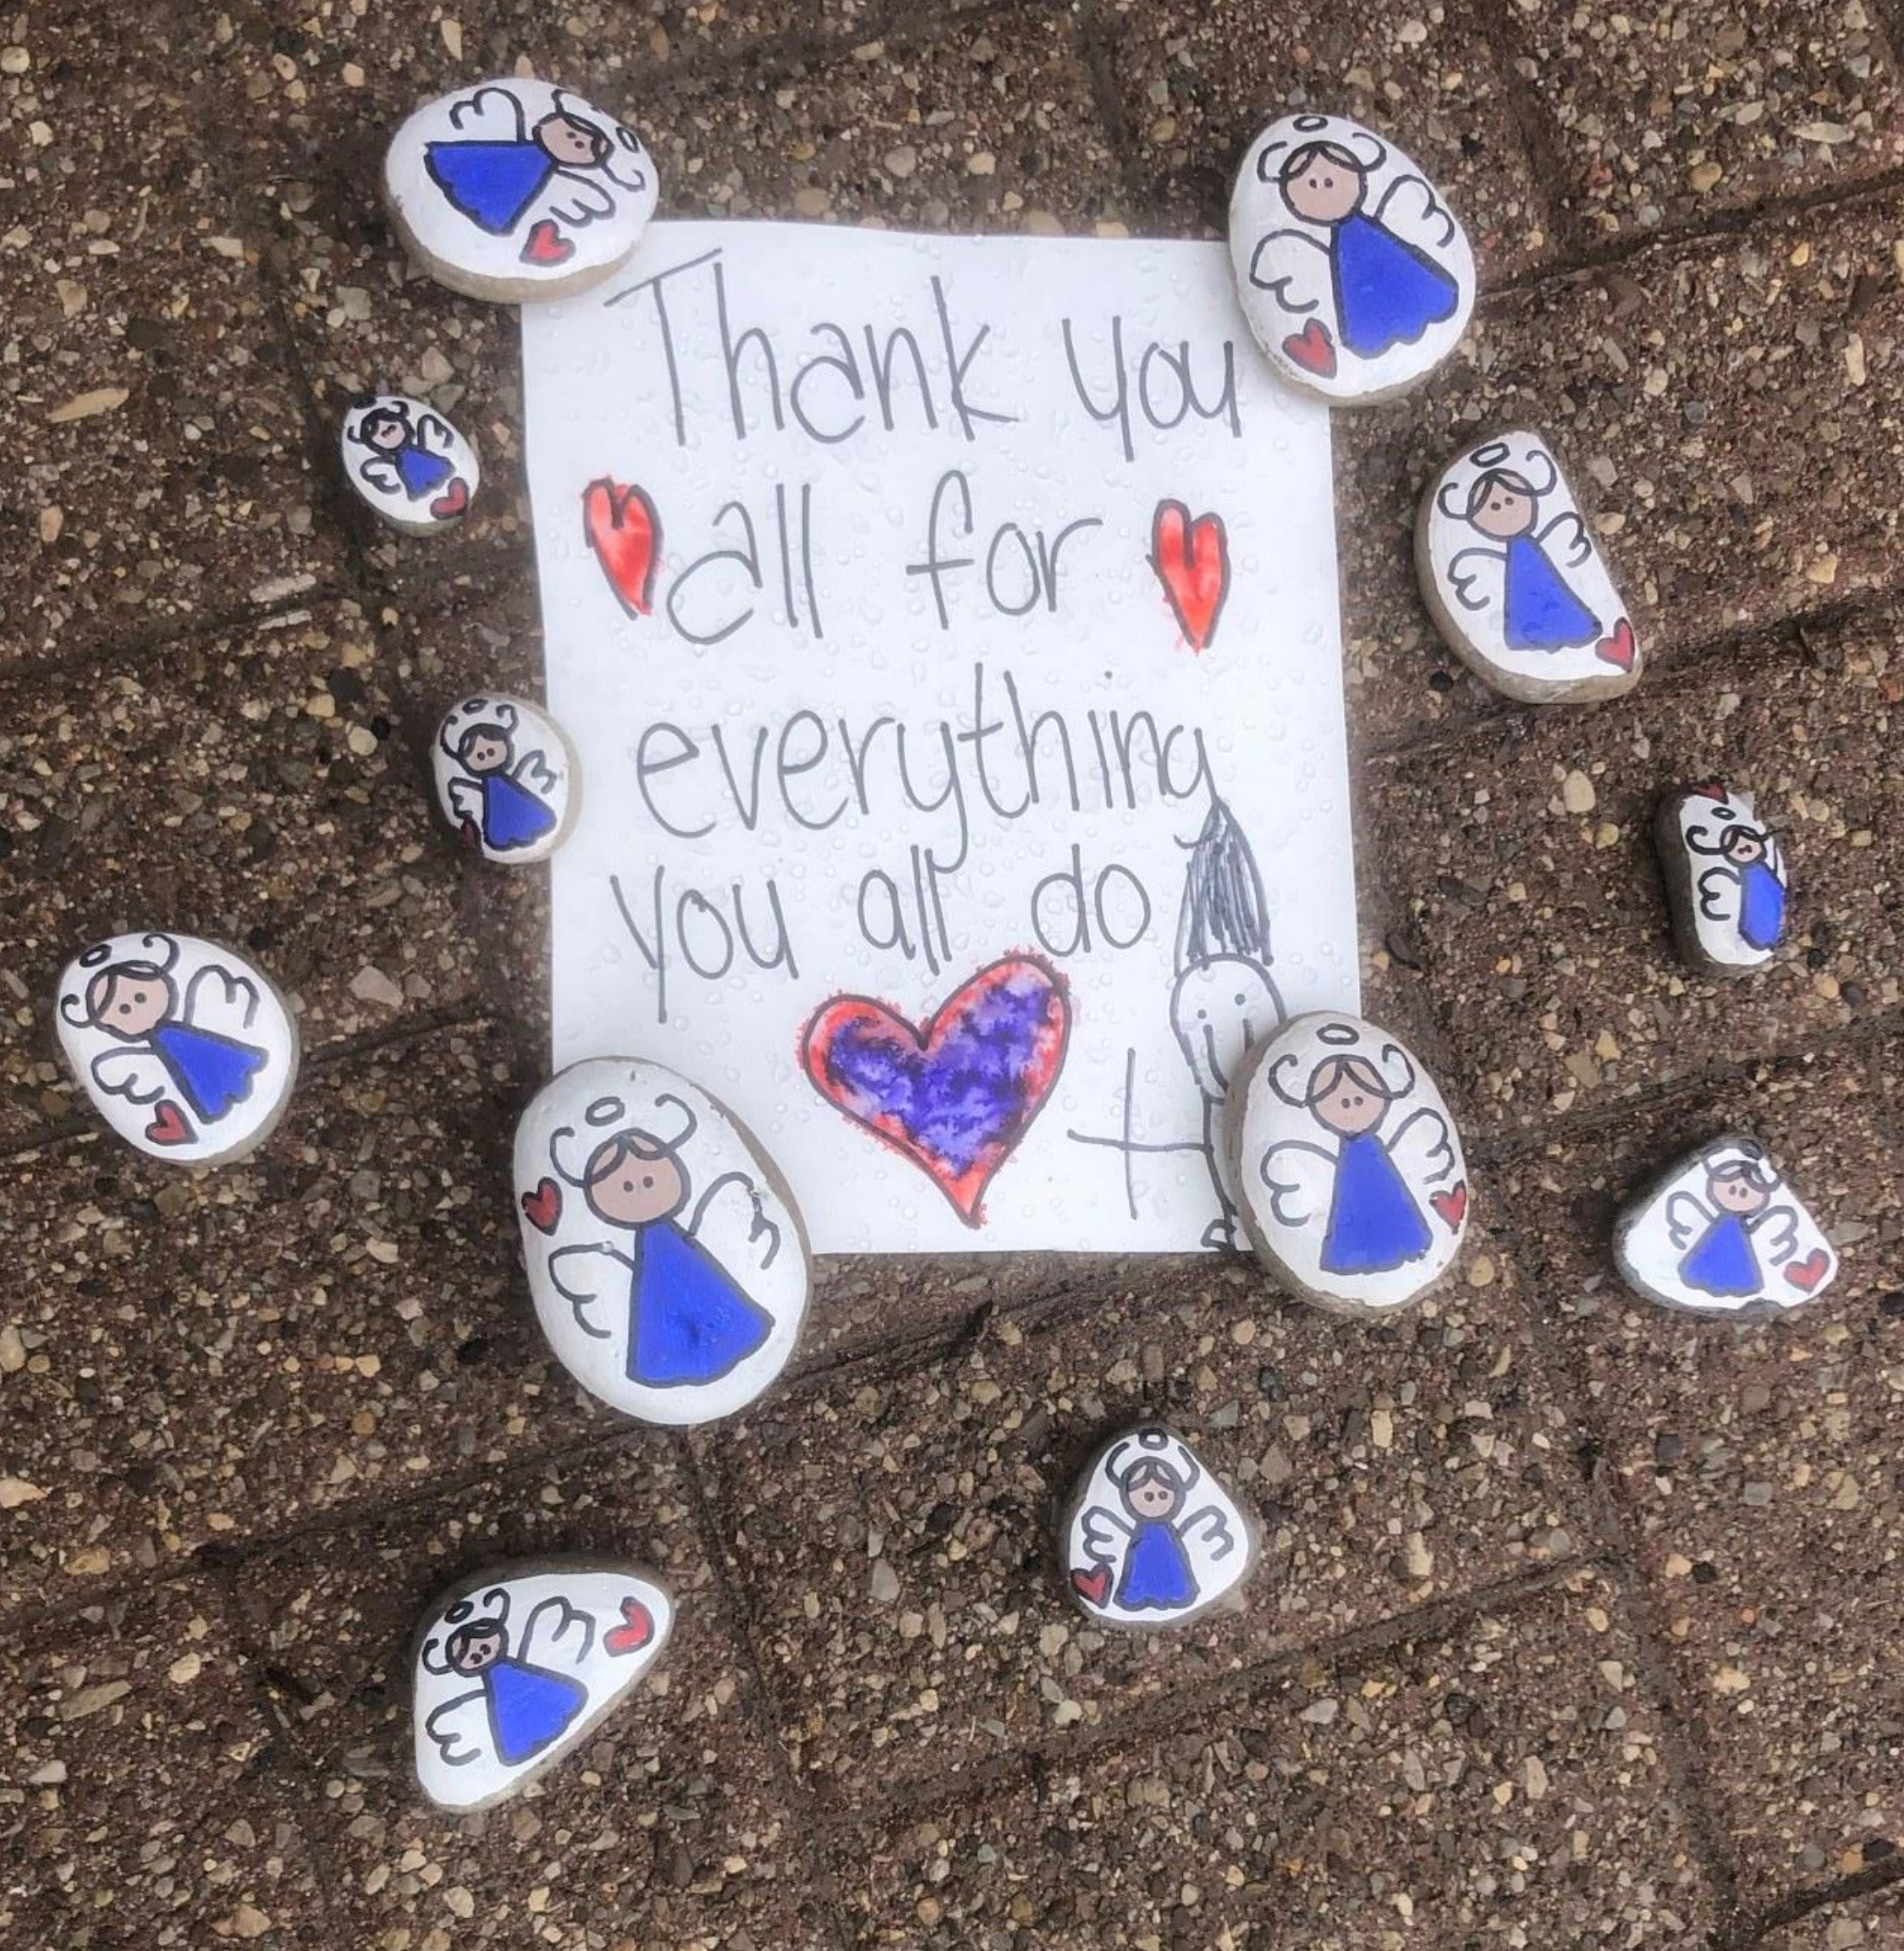 A hand written thank you note and painted rocks placed on the ground outside a long term care home